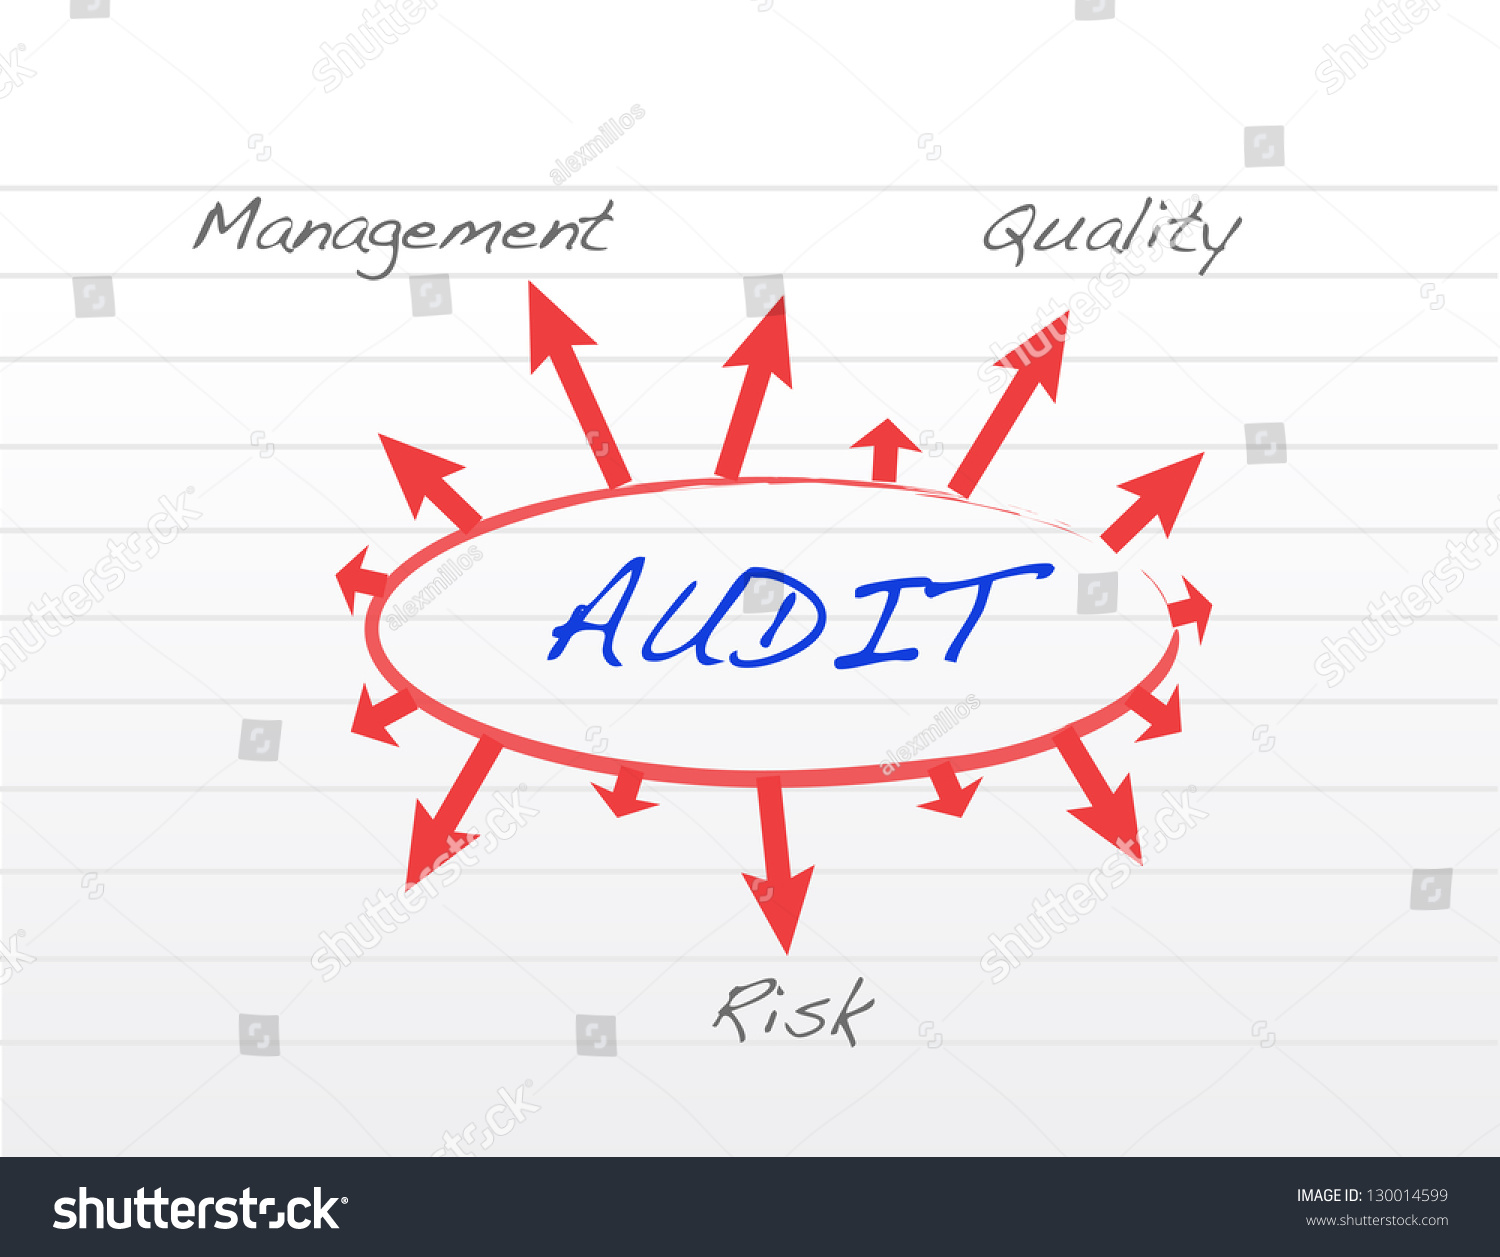 how to become a company auditor